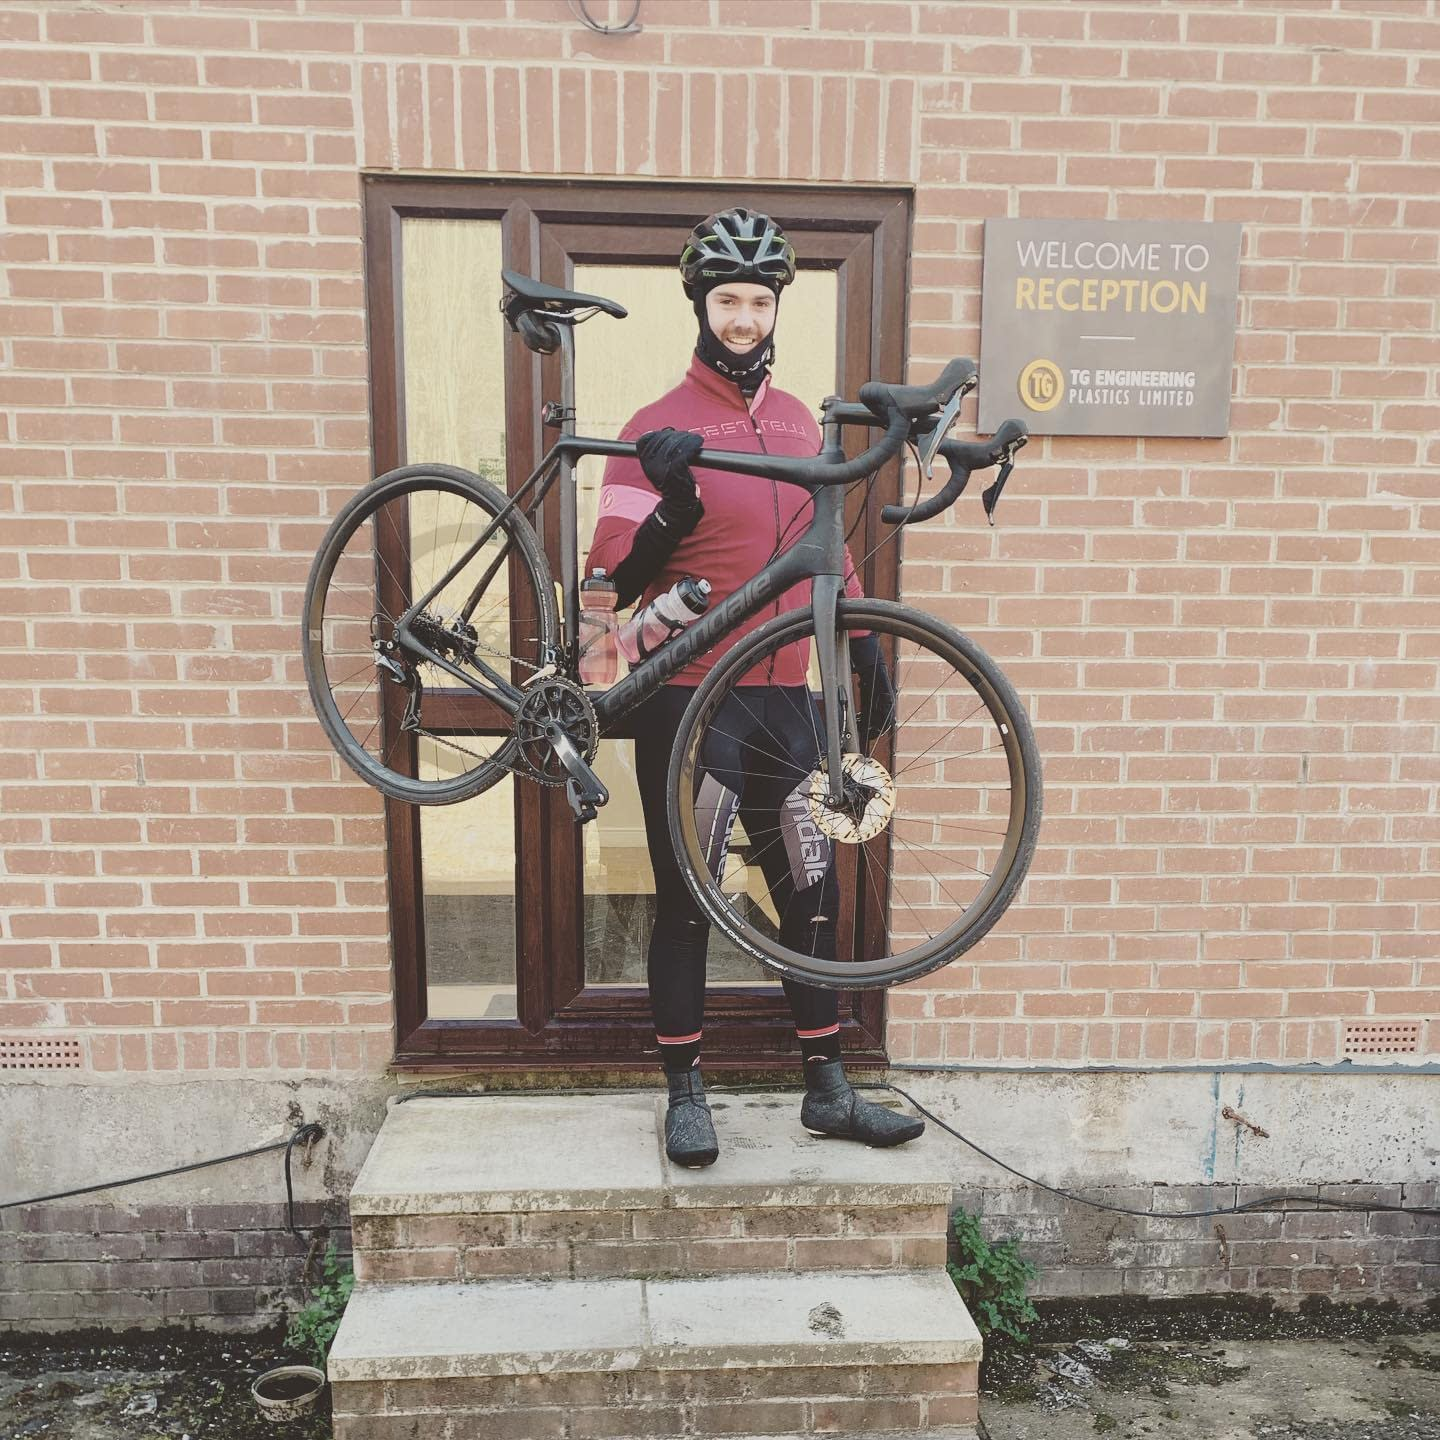 Lands End to John O Groats Charity Cycle | TG Engineering Plastics Limited